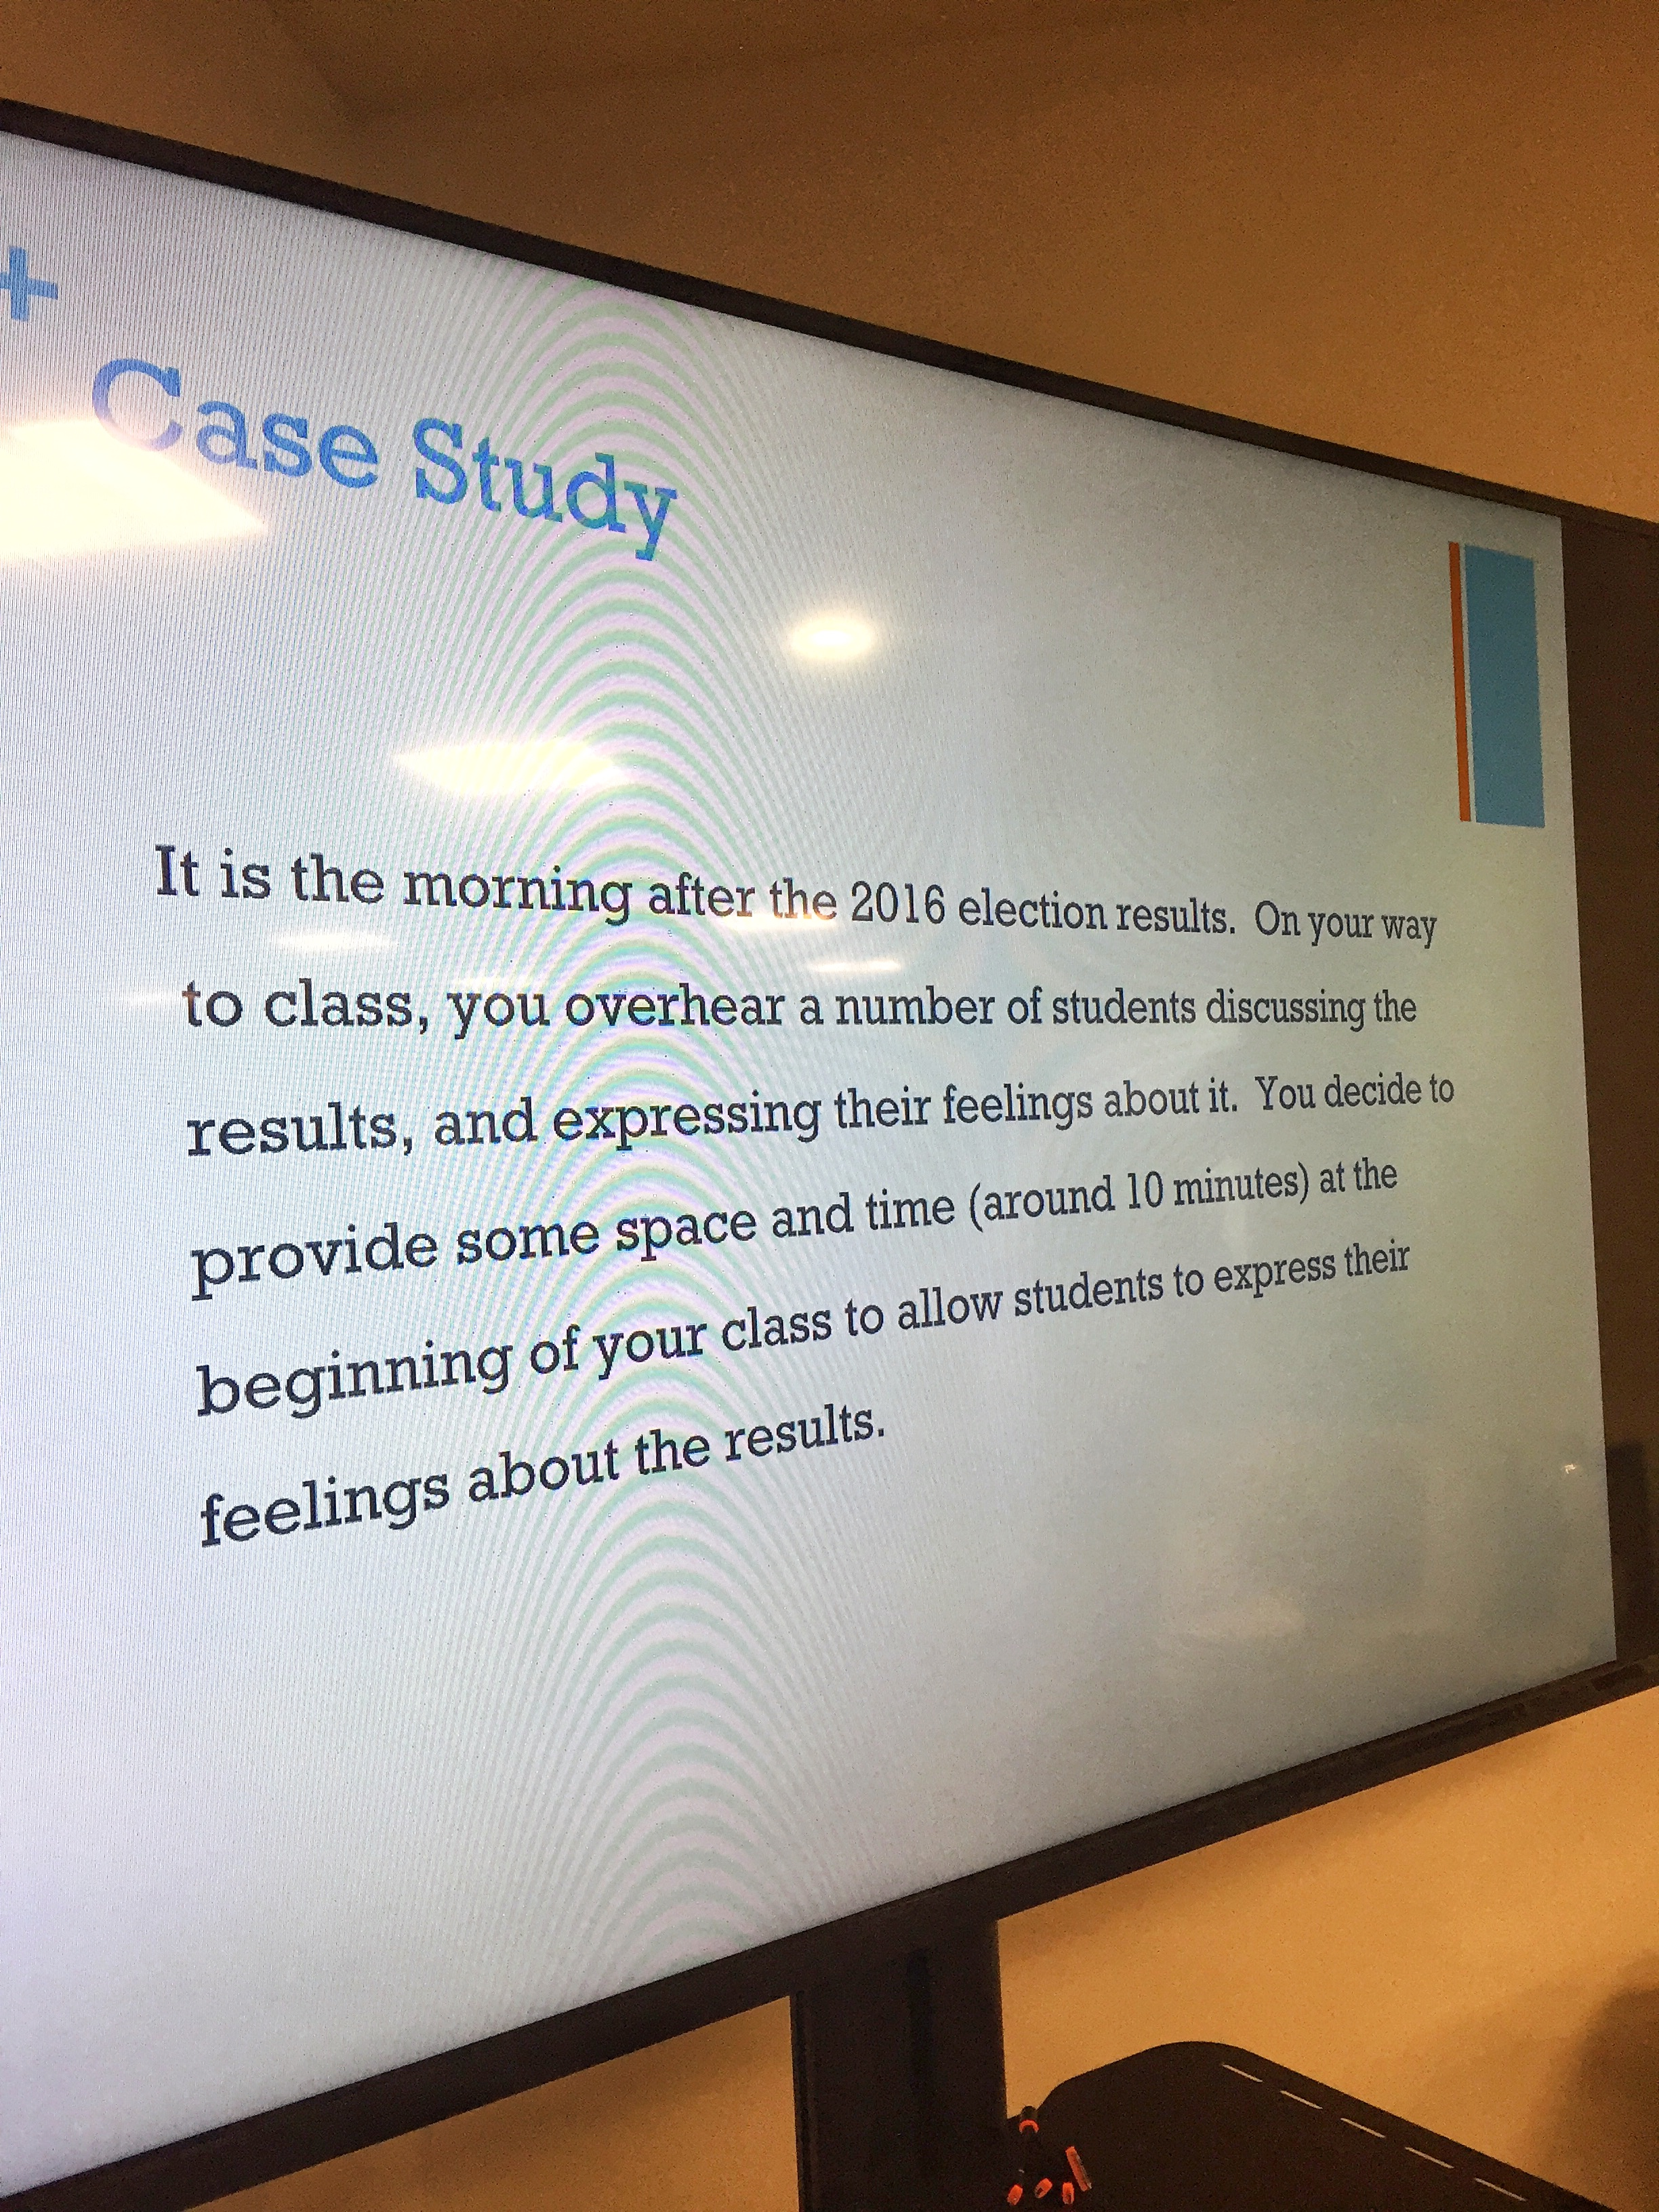 Case study used in SPO 100 for in-class discussion.